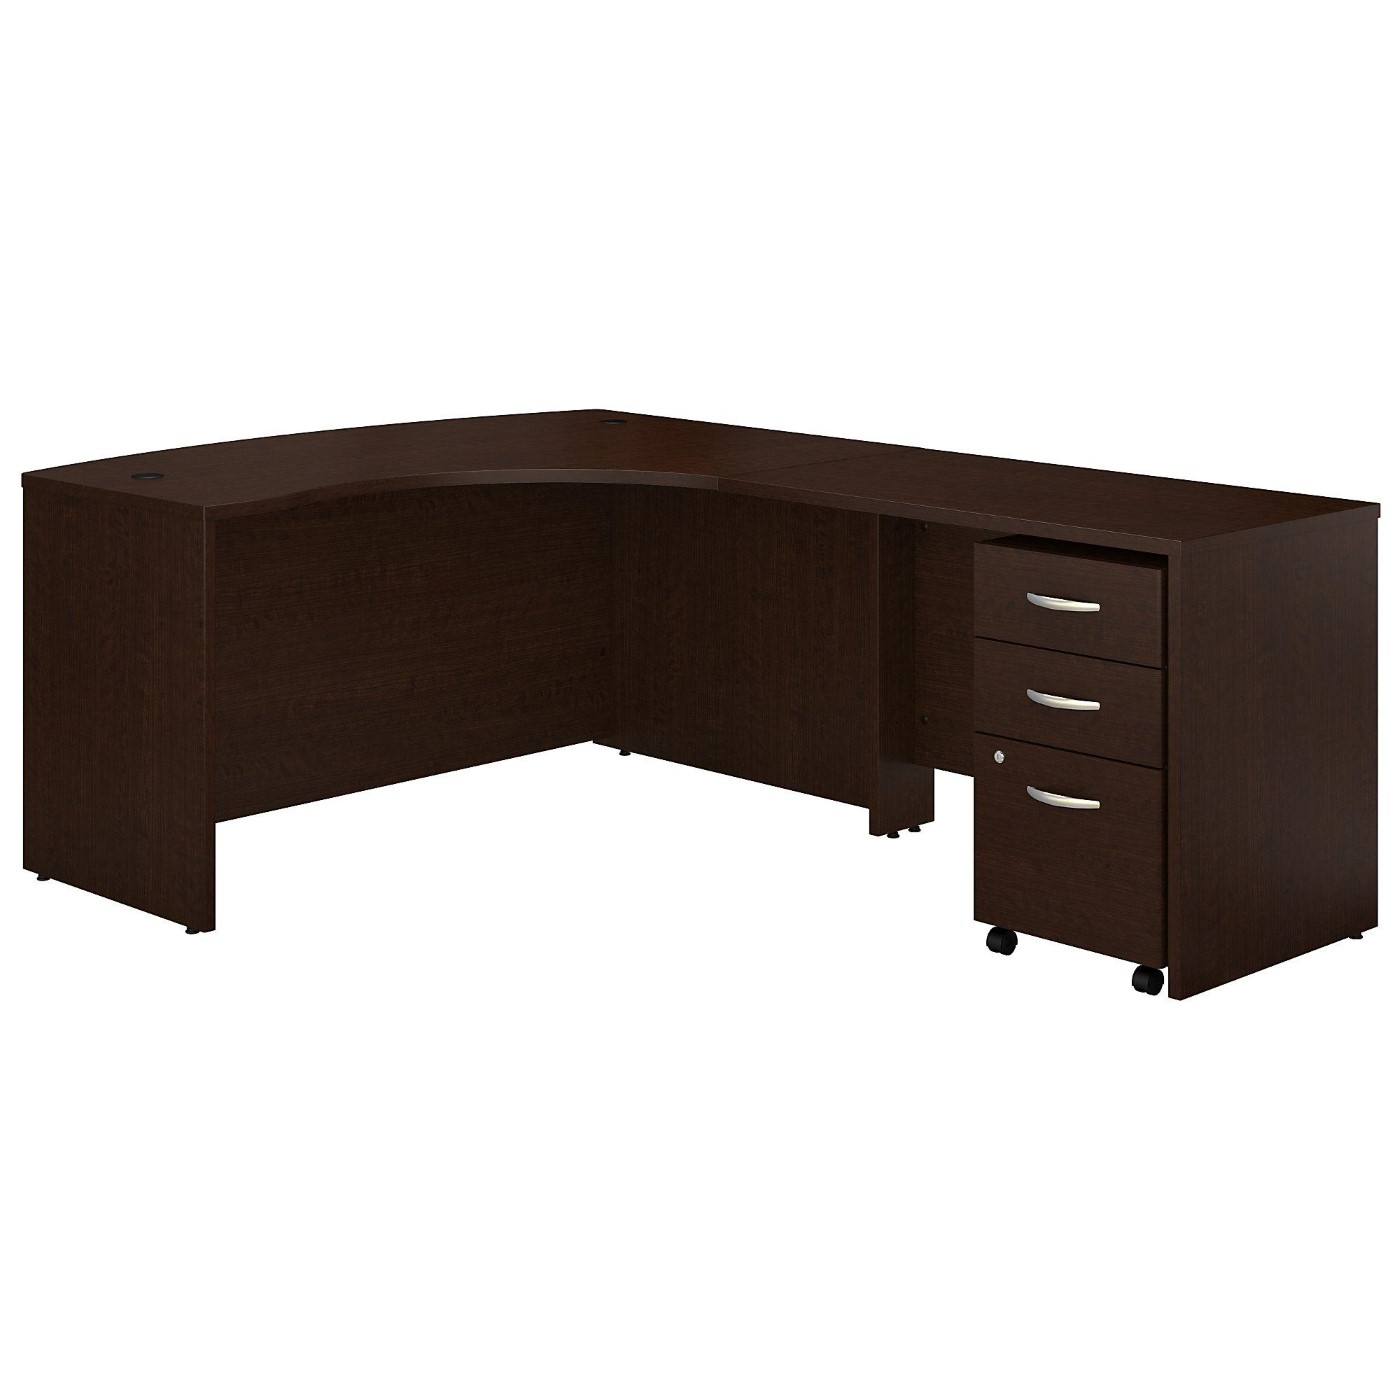 BUSH BUSINESS FURNITURE SERIES C LEFT HANDED L SHAPED DESK WITH MOBILE FILE CABINET. FREE SHIPPING.